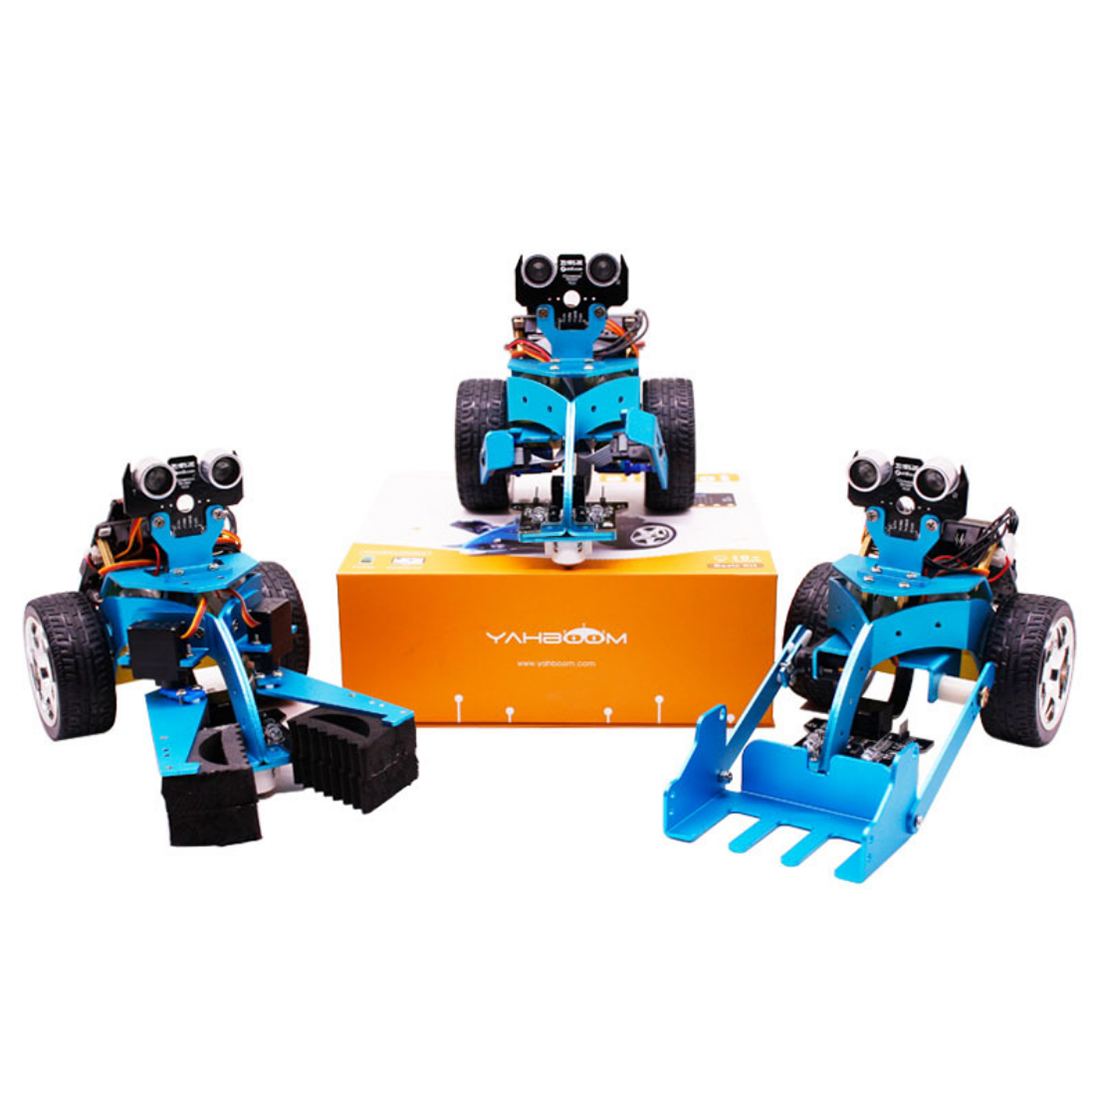 3-in-1 Graphical Programmable Robot Car with Bluetooth IR Tracking Module Model Building Steam Stem Toy for Micro:bit BBC3-in-1 Graphical Programmable Robot Car with Bluetooth IR Tracking Module Model Building Steam Stem Toy for Micro:bit BBC